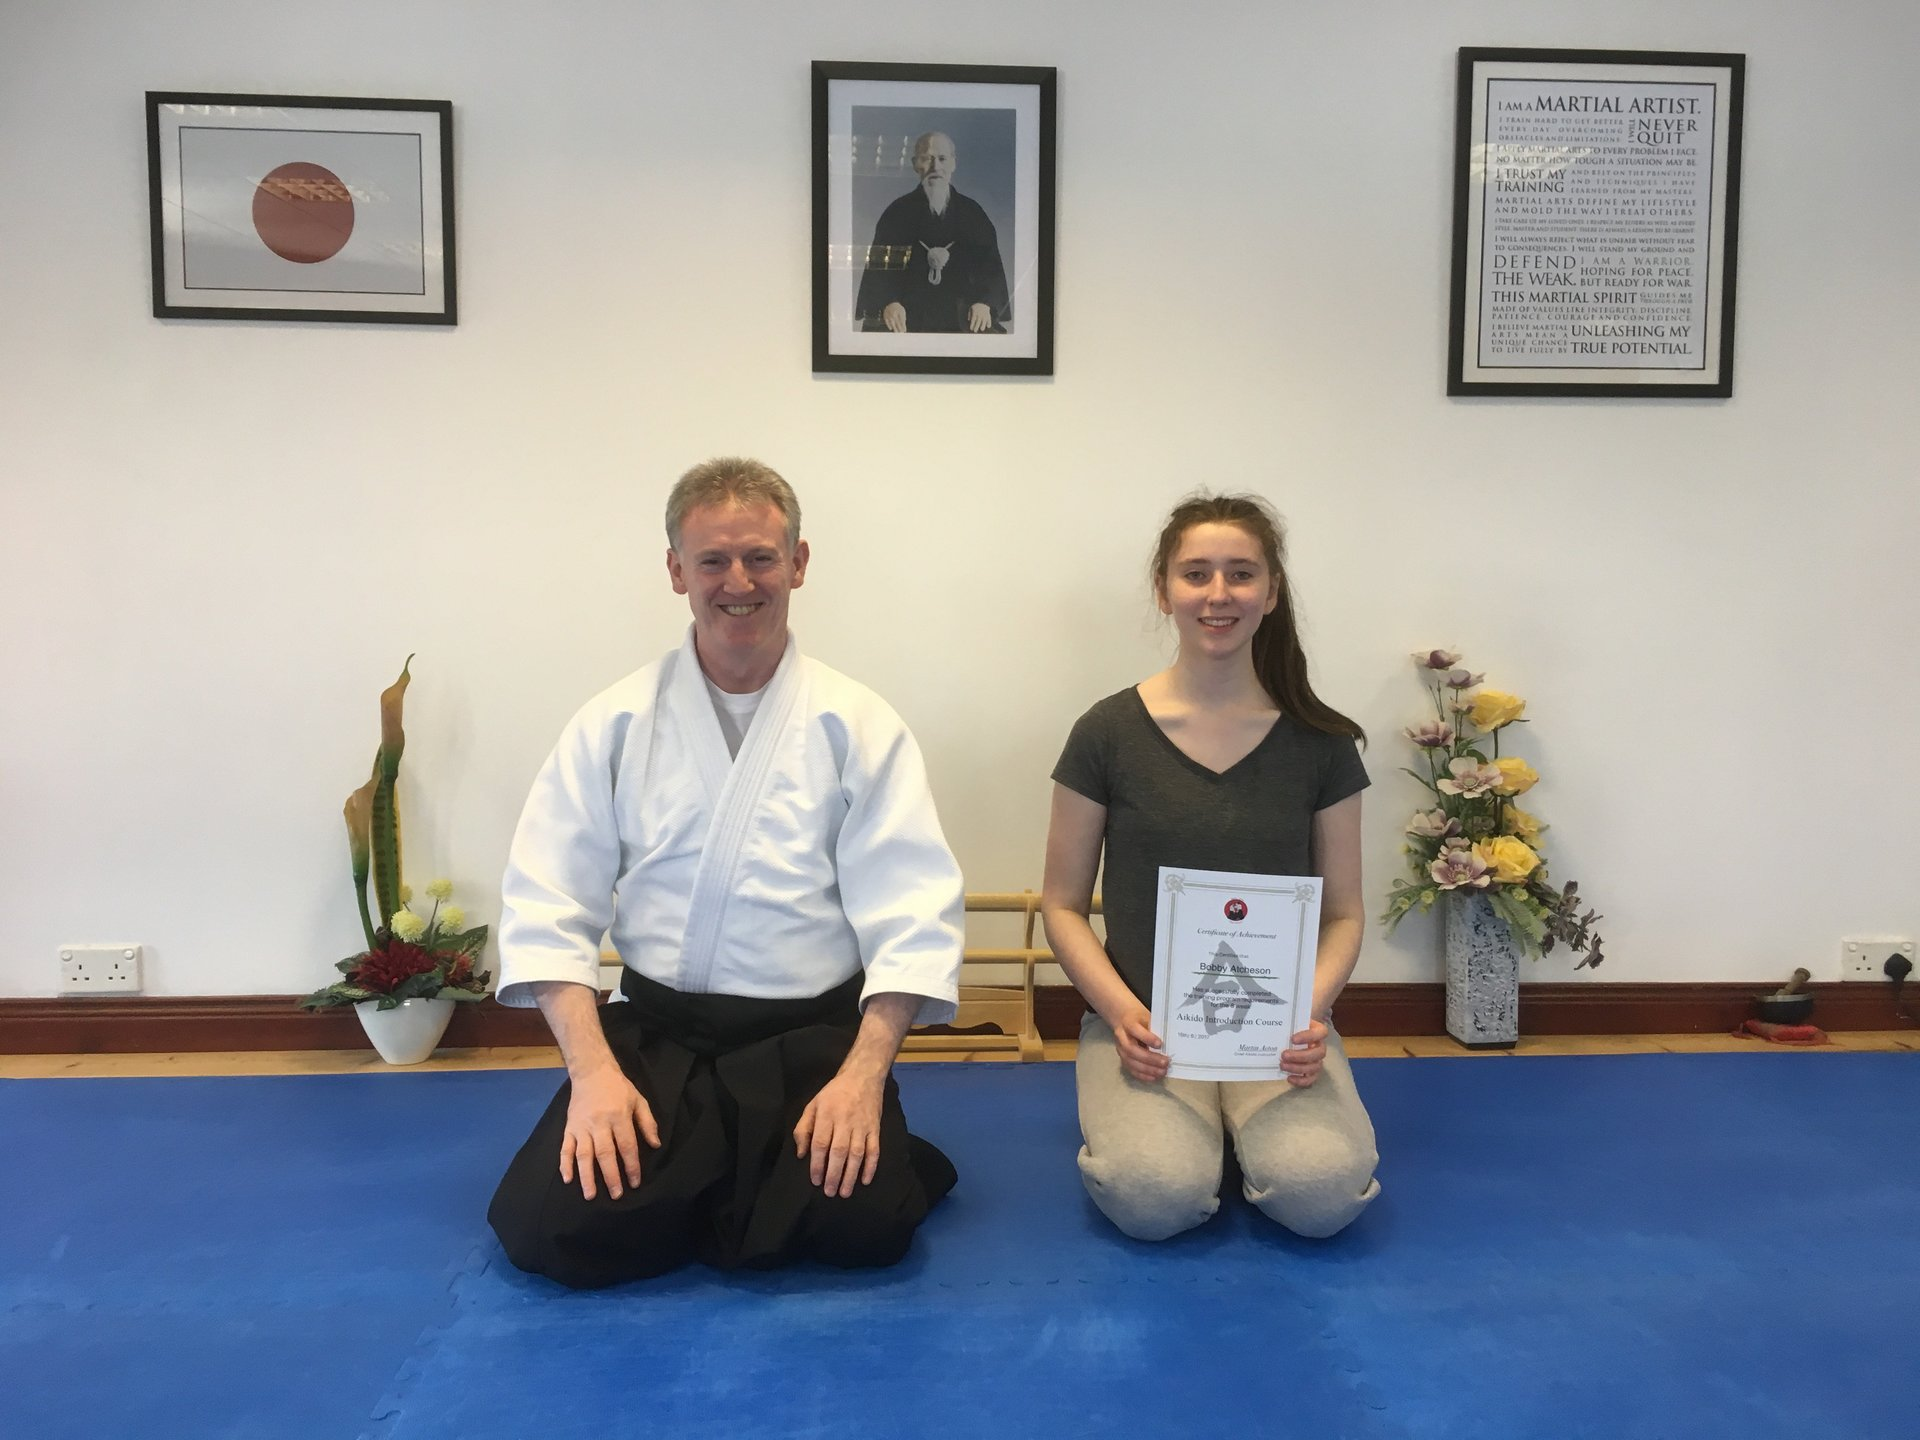 this is Bobby Atcheson receiving her Aikido 8-week Introduction Course  Certification with Martin Acton sensei on the 15/6/2017 at Martin Acton's Aikido Institute